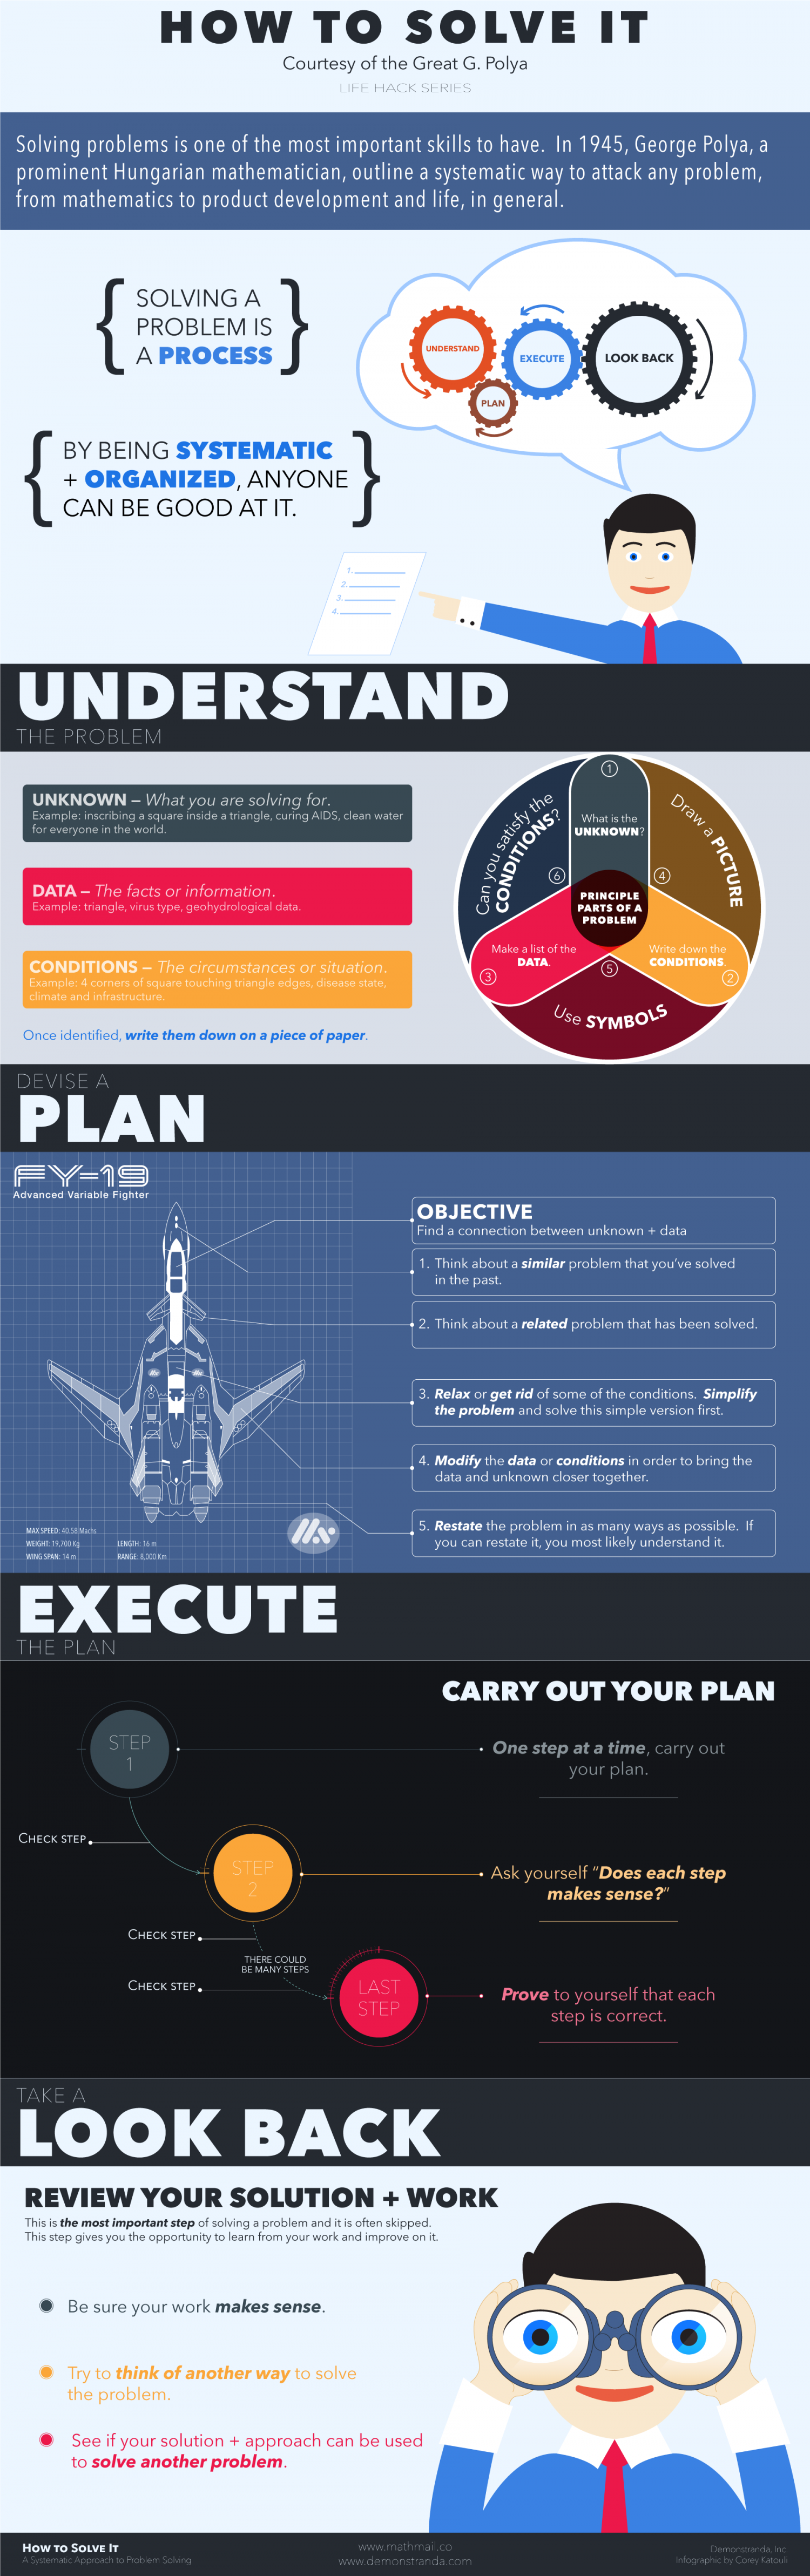 How to Solve it Infographic